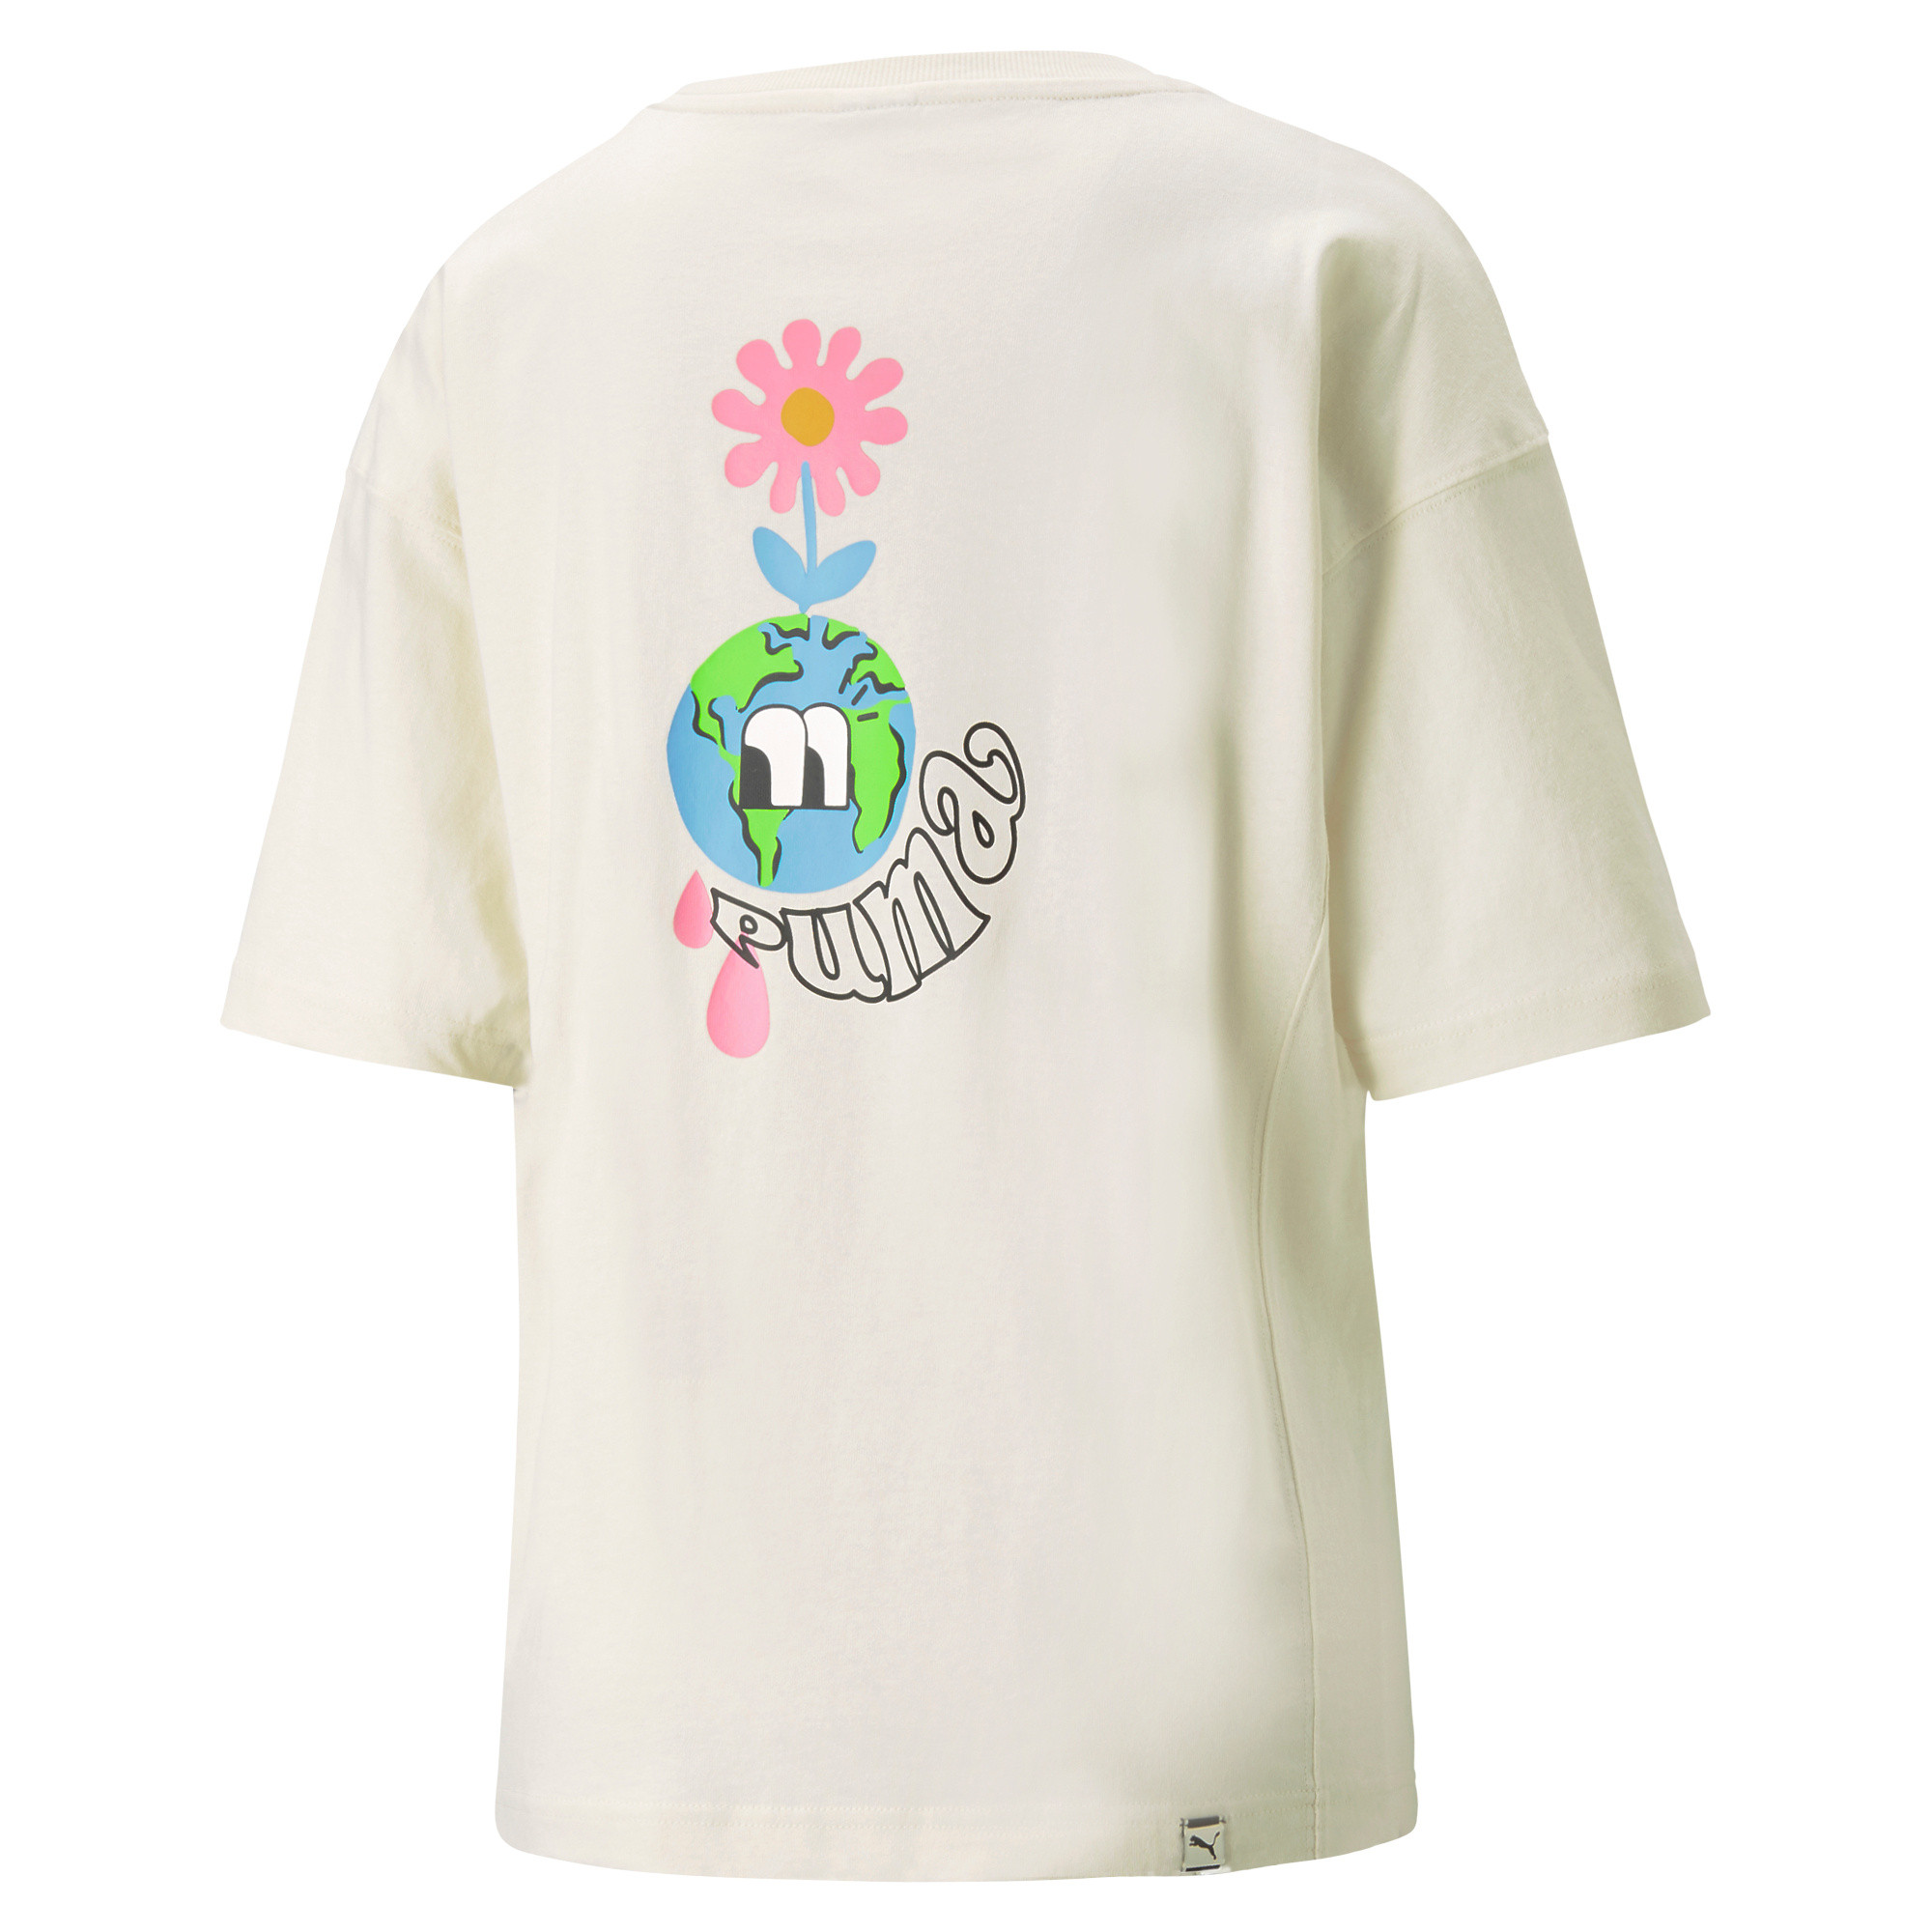 T-shirt sportiva  Downtown Graphic, Beige, large image number 1